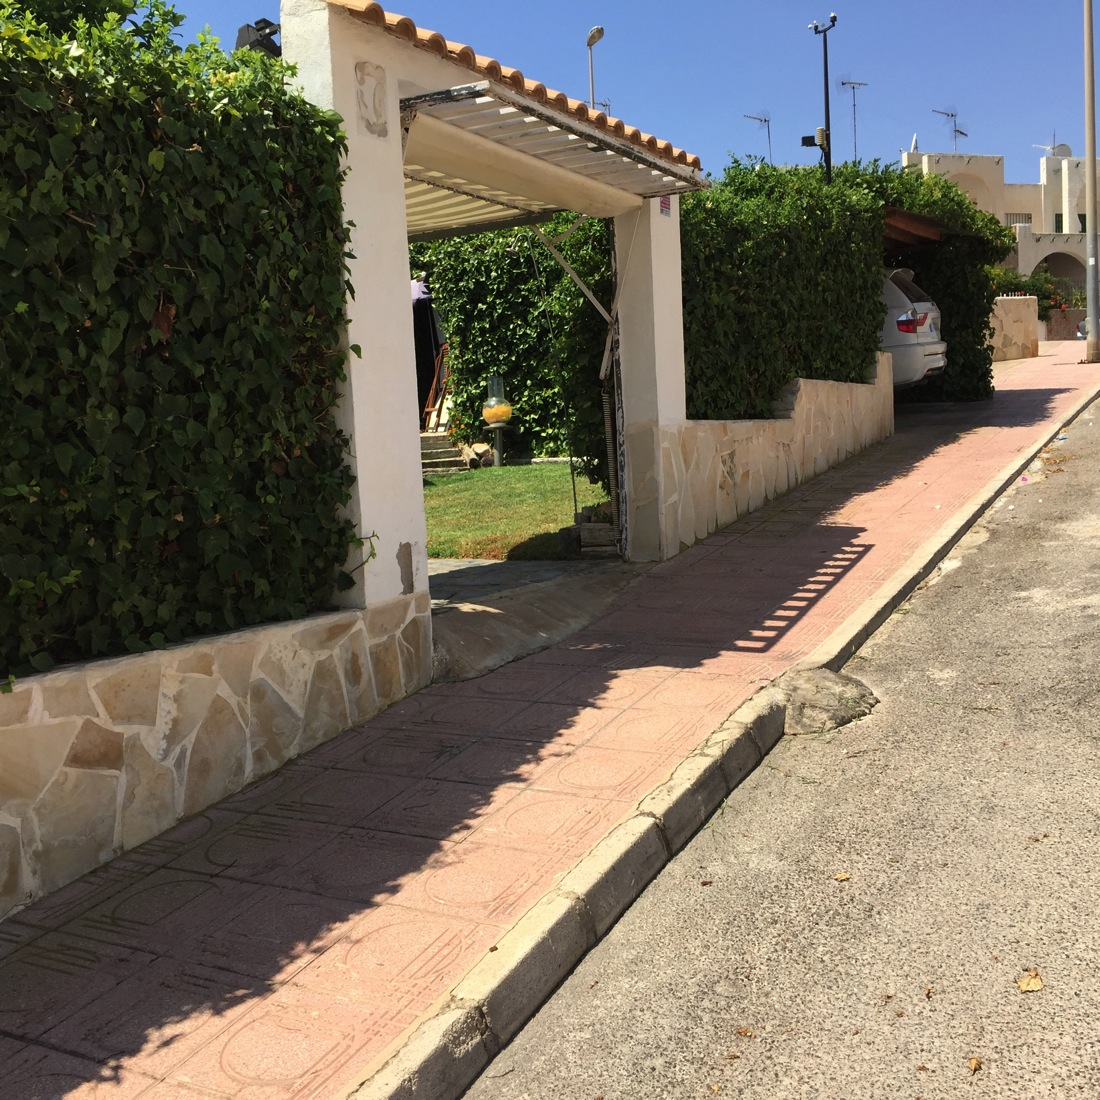 A 3 bed, 2 Bath ground floor Apartment in El Alamillo.